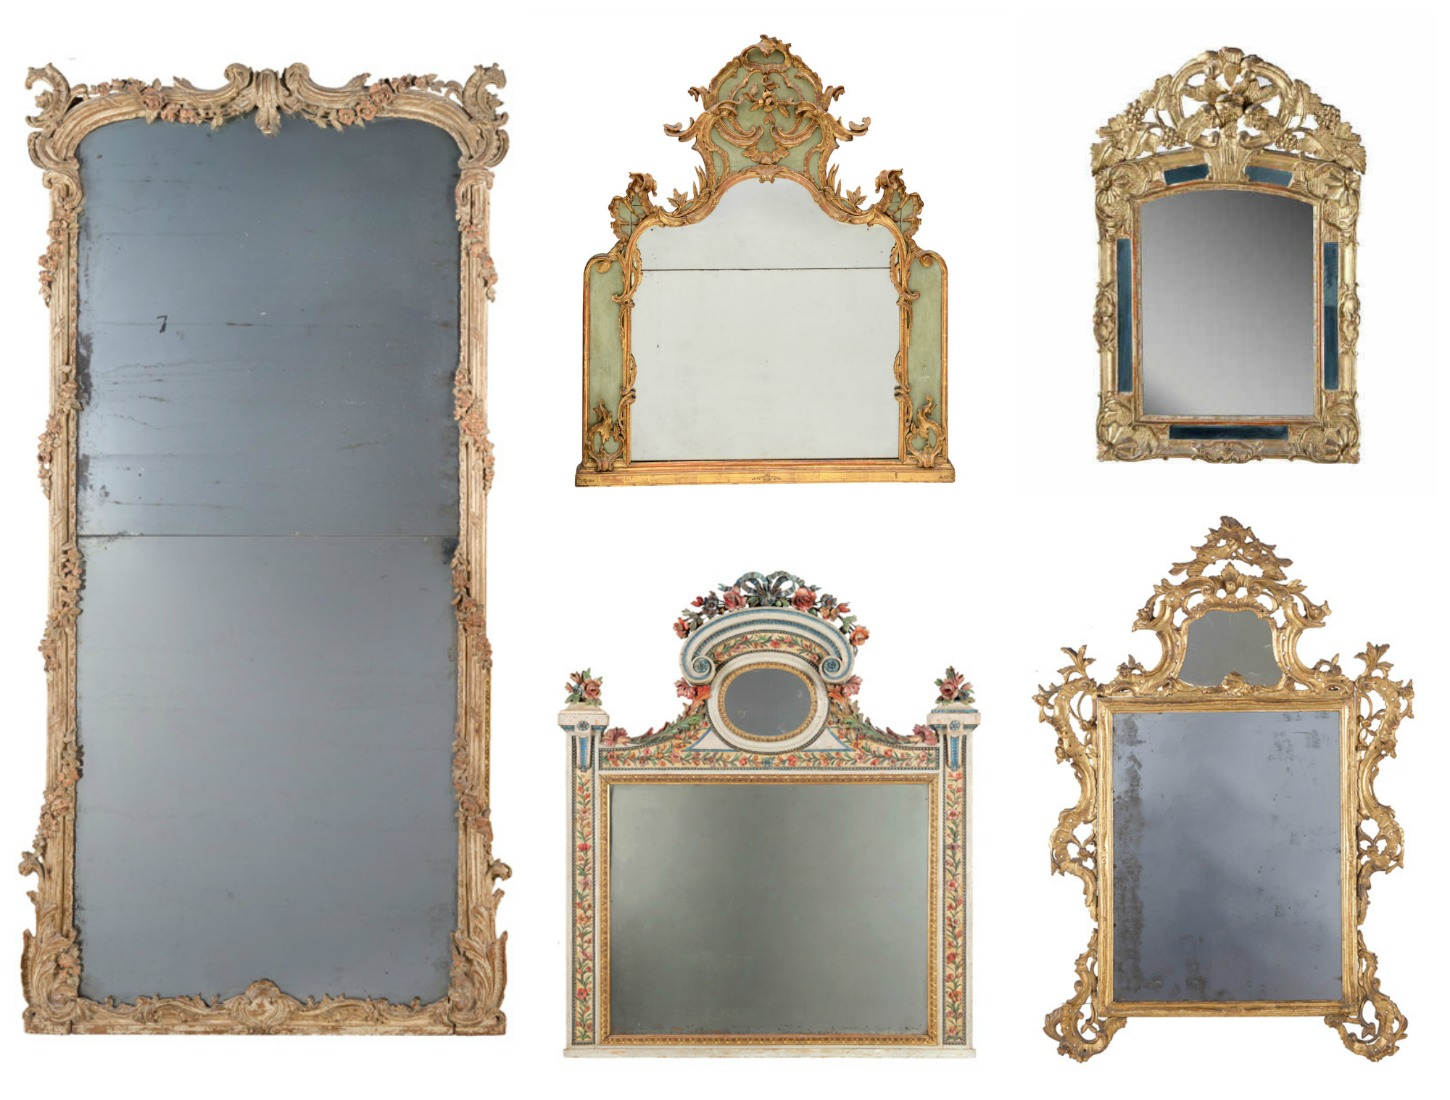 La Caminera The Overmantel Mirror Dada S Dollhouse